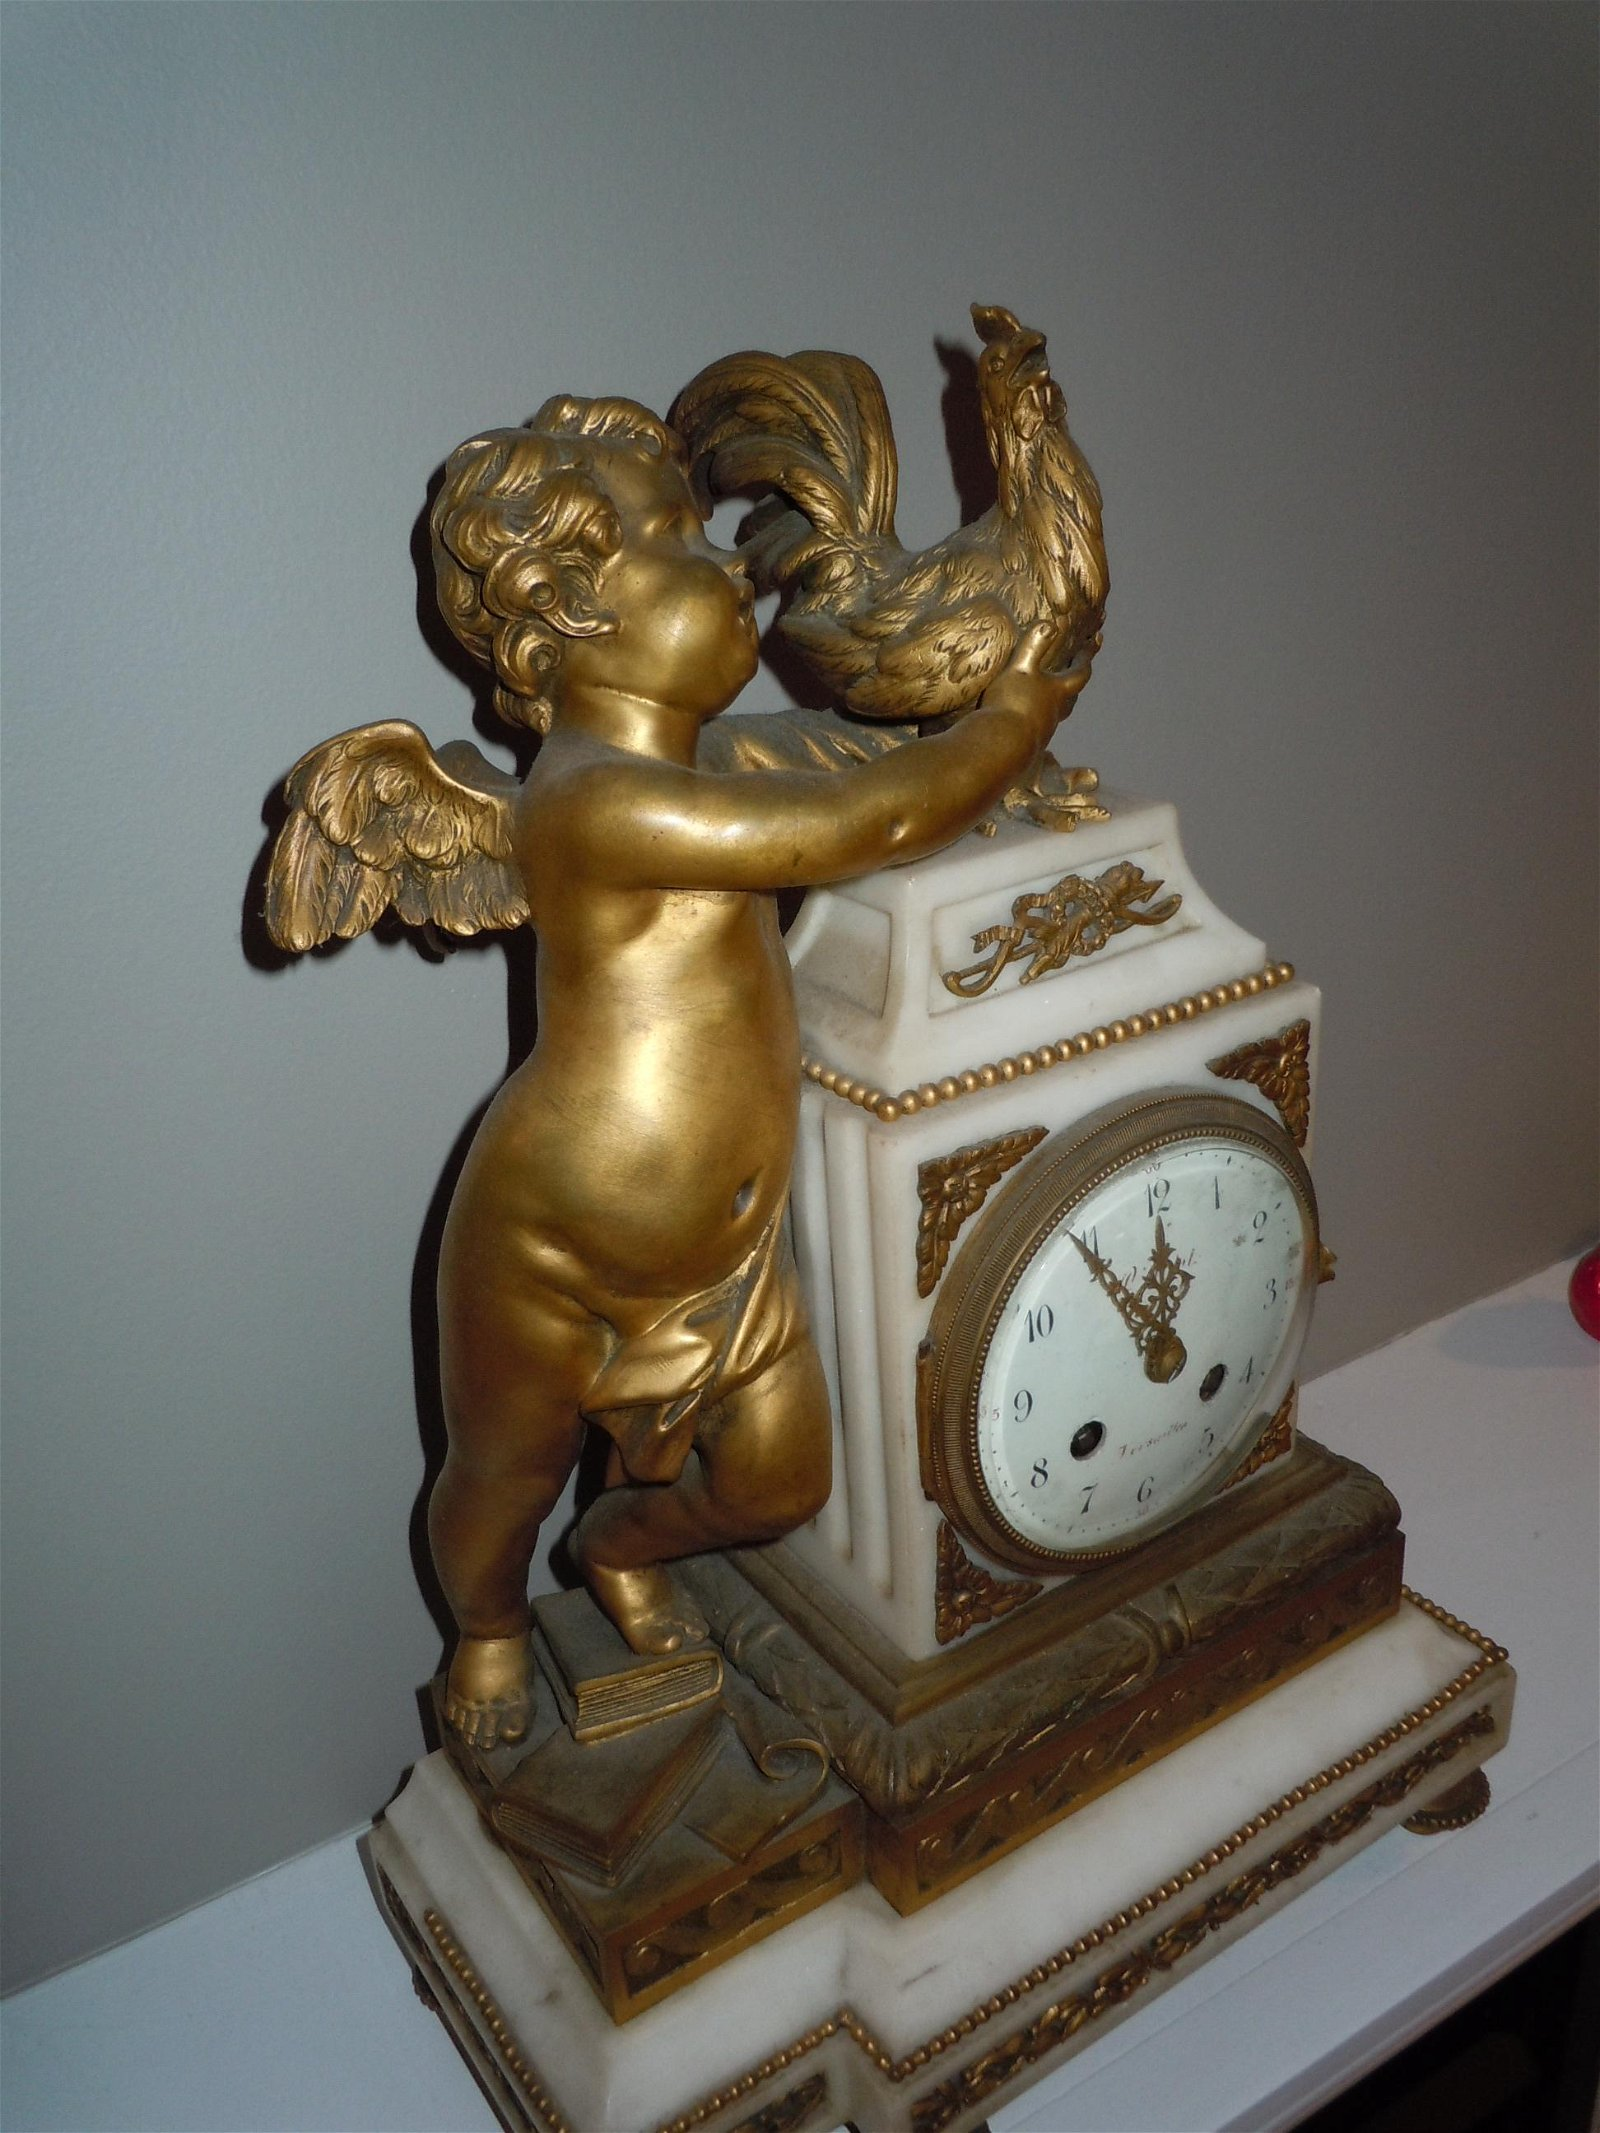 19C FRENCH BRONZE CHIMING MANTLE CLOCK ANGEL W/ ROOSTER